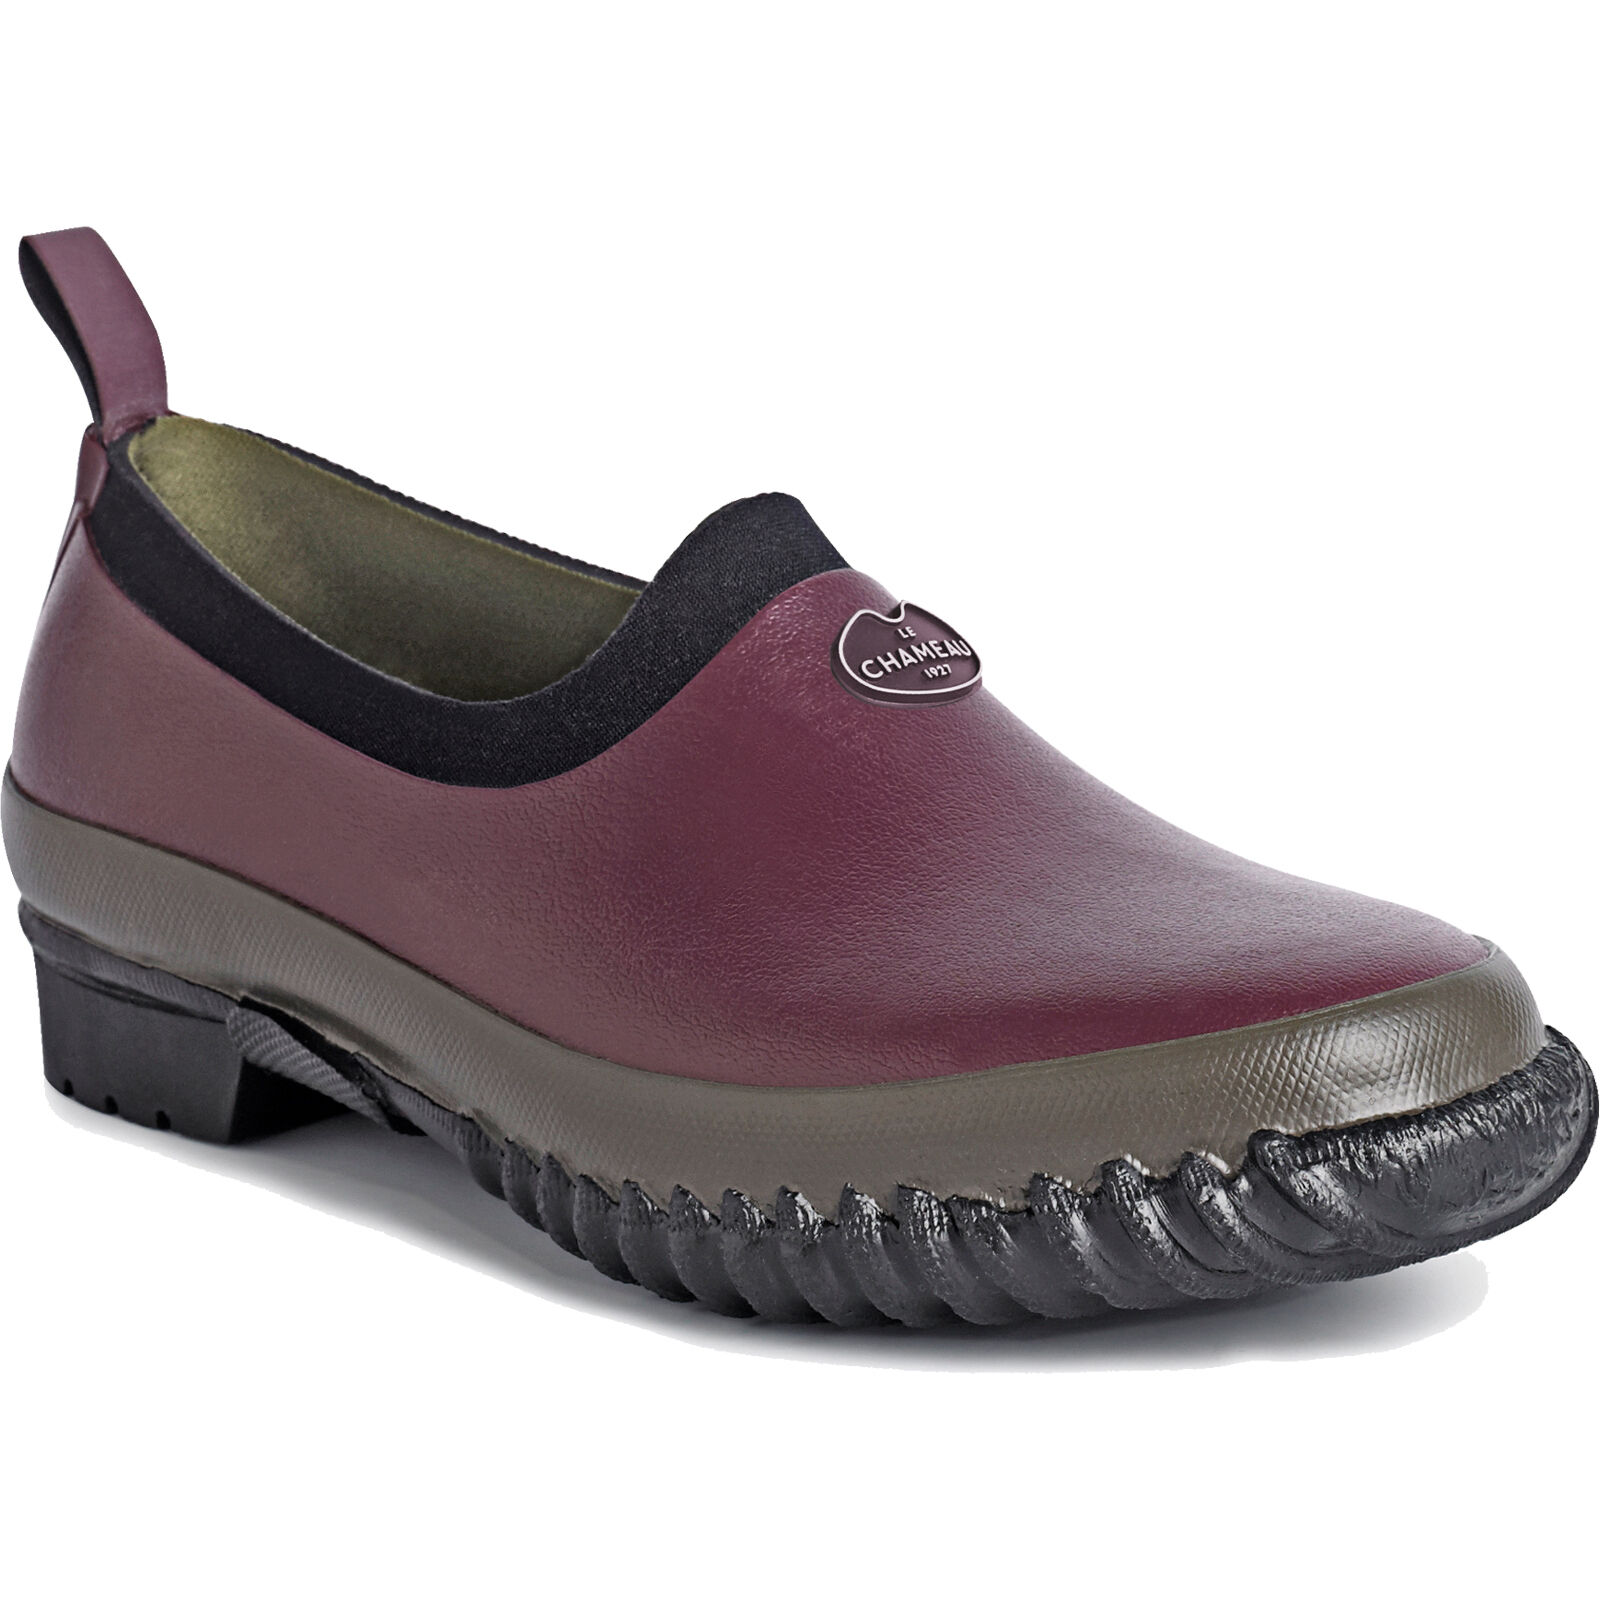 Le Chameau Colza Gardening Clog - Ladies - Cherry - UK 3 left - Now only